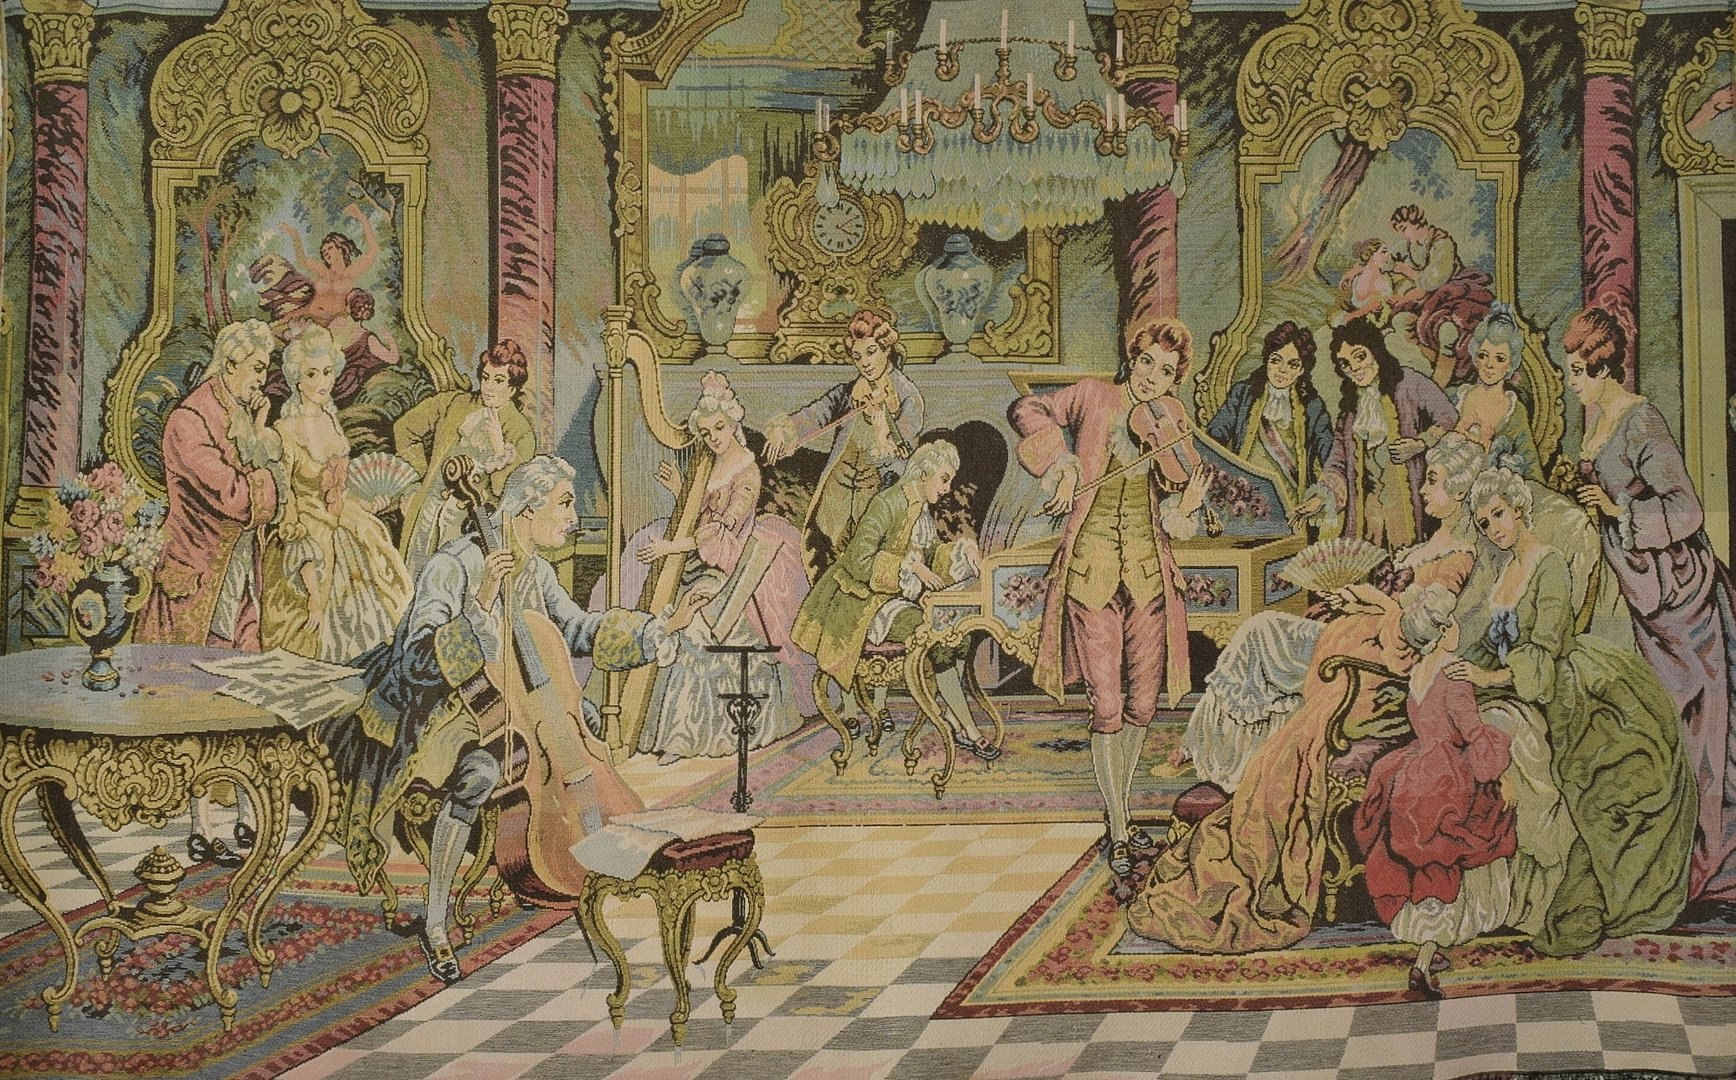 B1362 - Sensational Large Vintage French Tapestry Wall Hanging, 18th Century Society Scene